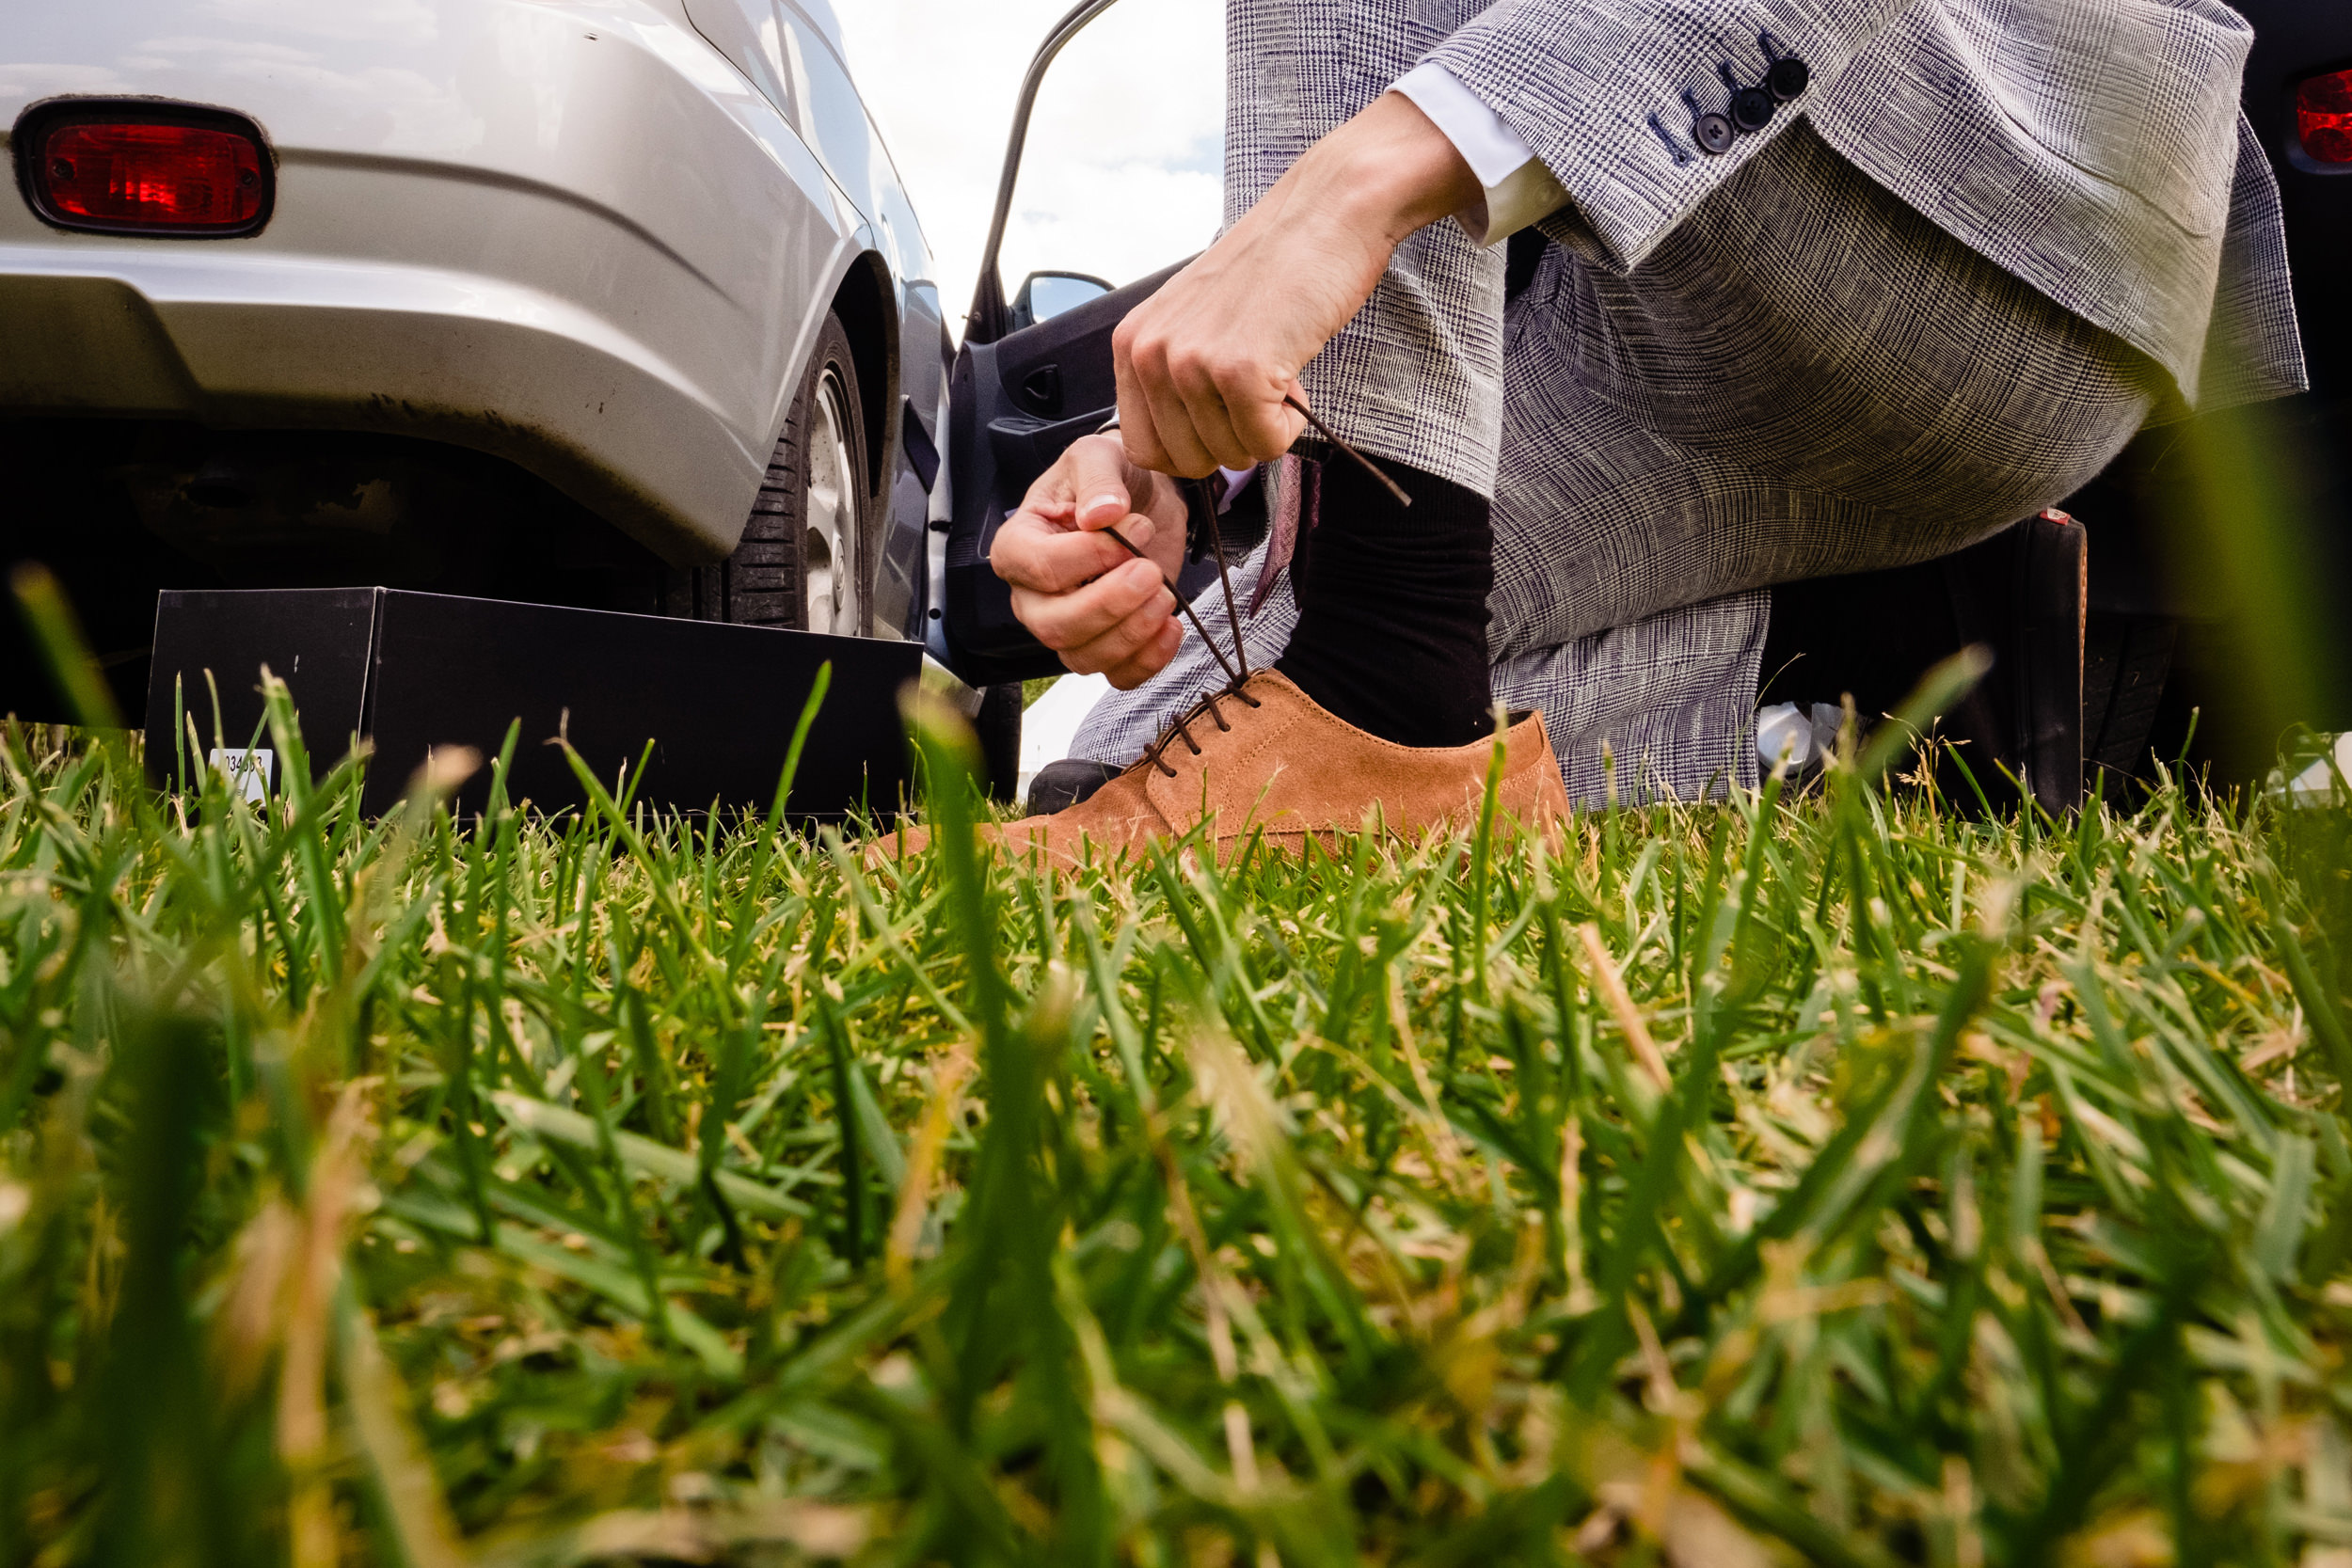 groom lacing up shoes in car park. maybush wedding co wedding photography by emma and rich.